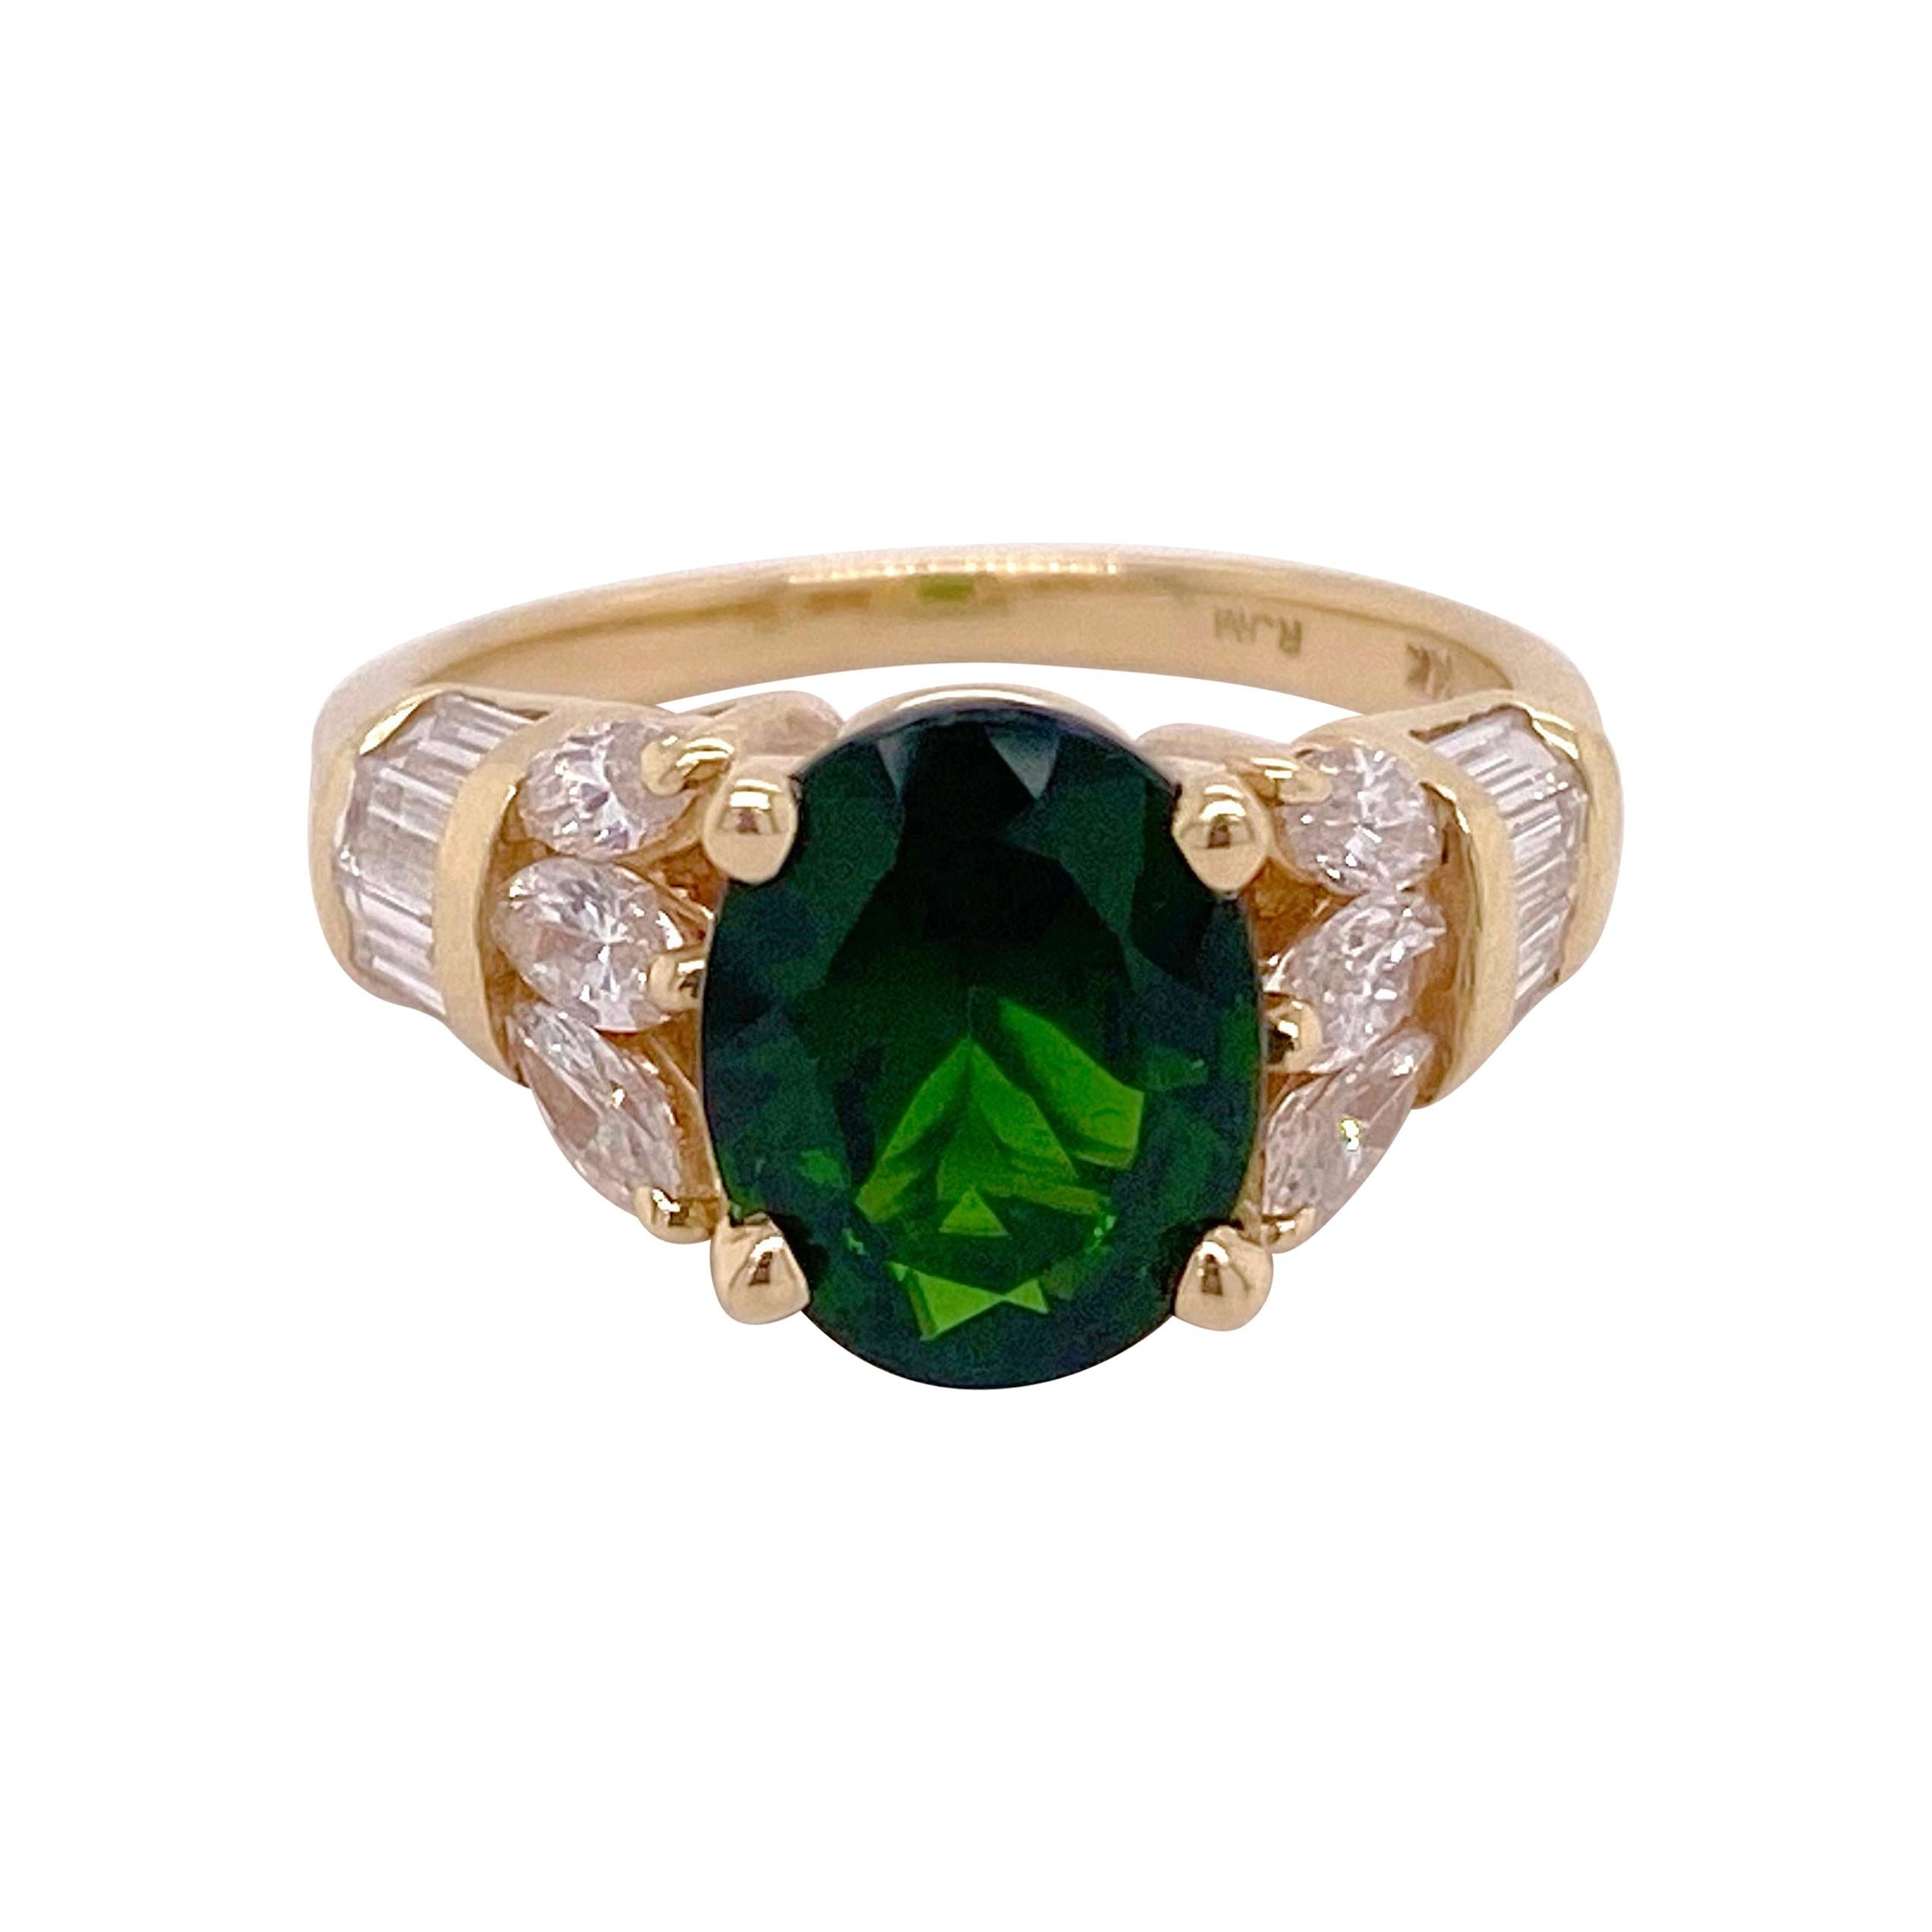 Russalite Diamond Ring, Oval Natural Genuine Green Gemstone Ring